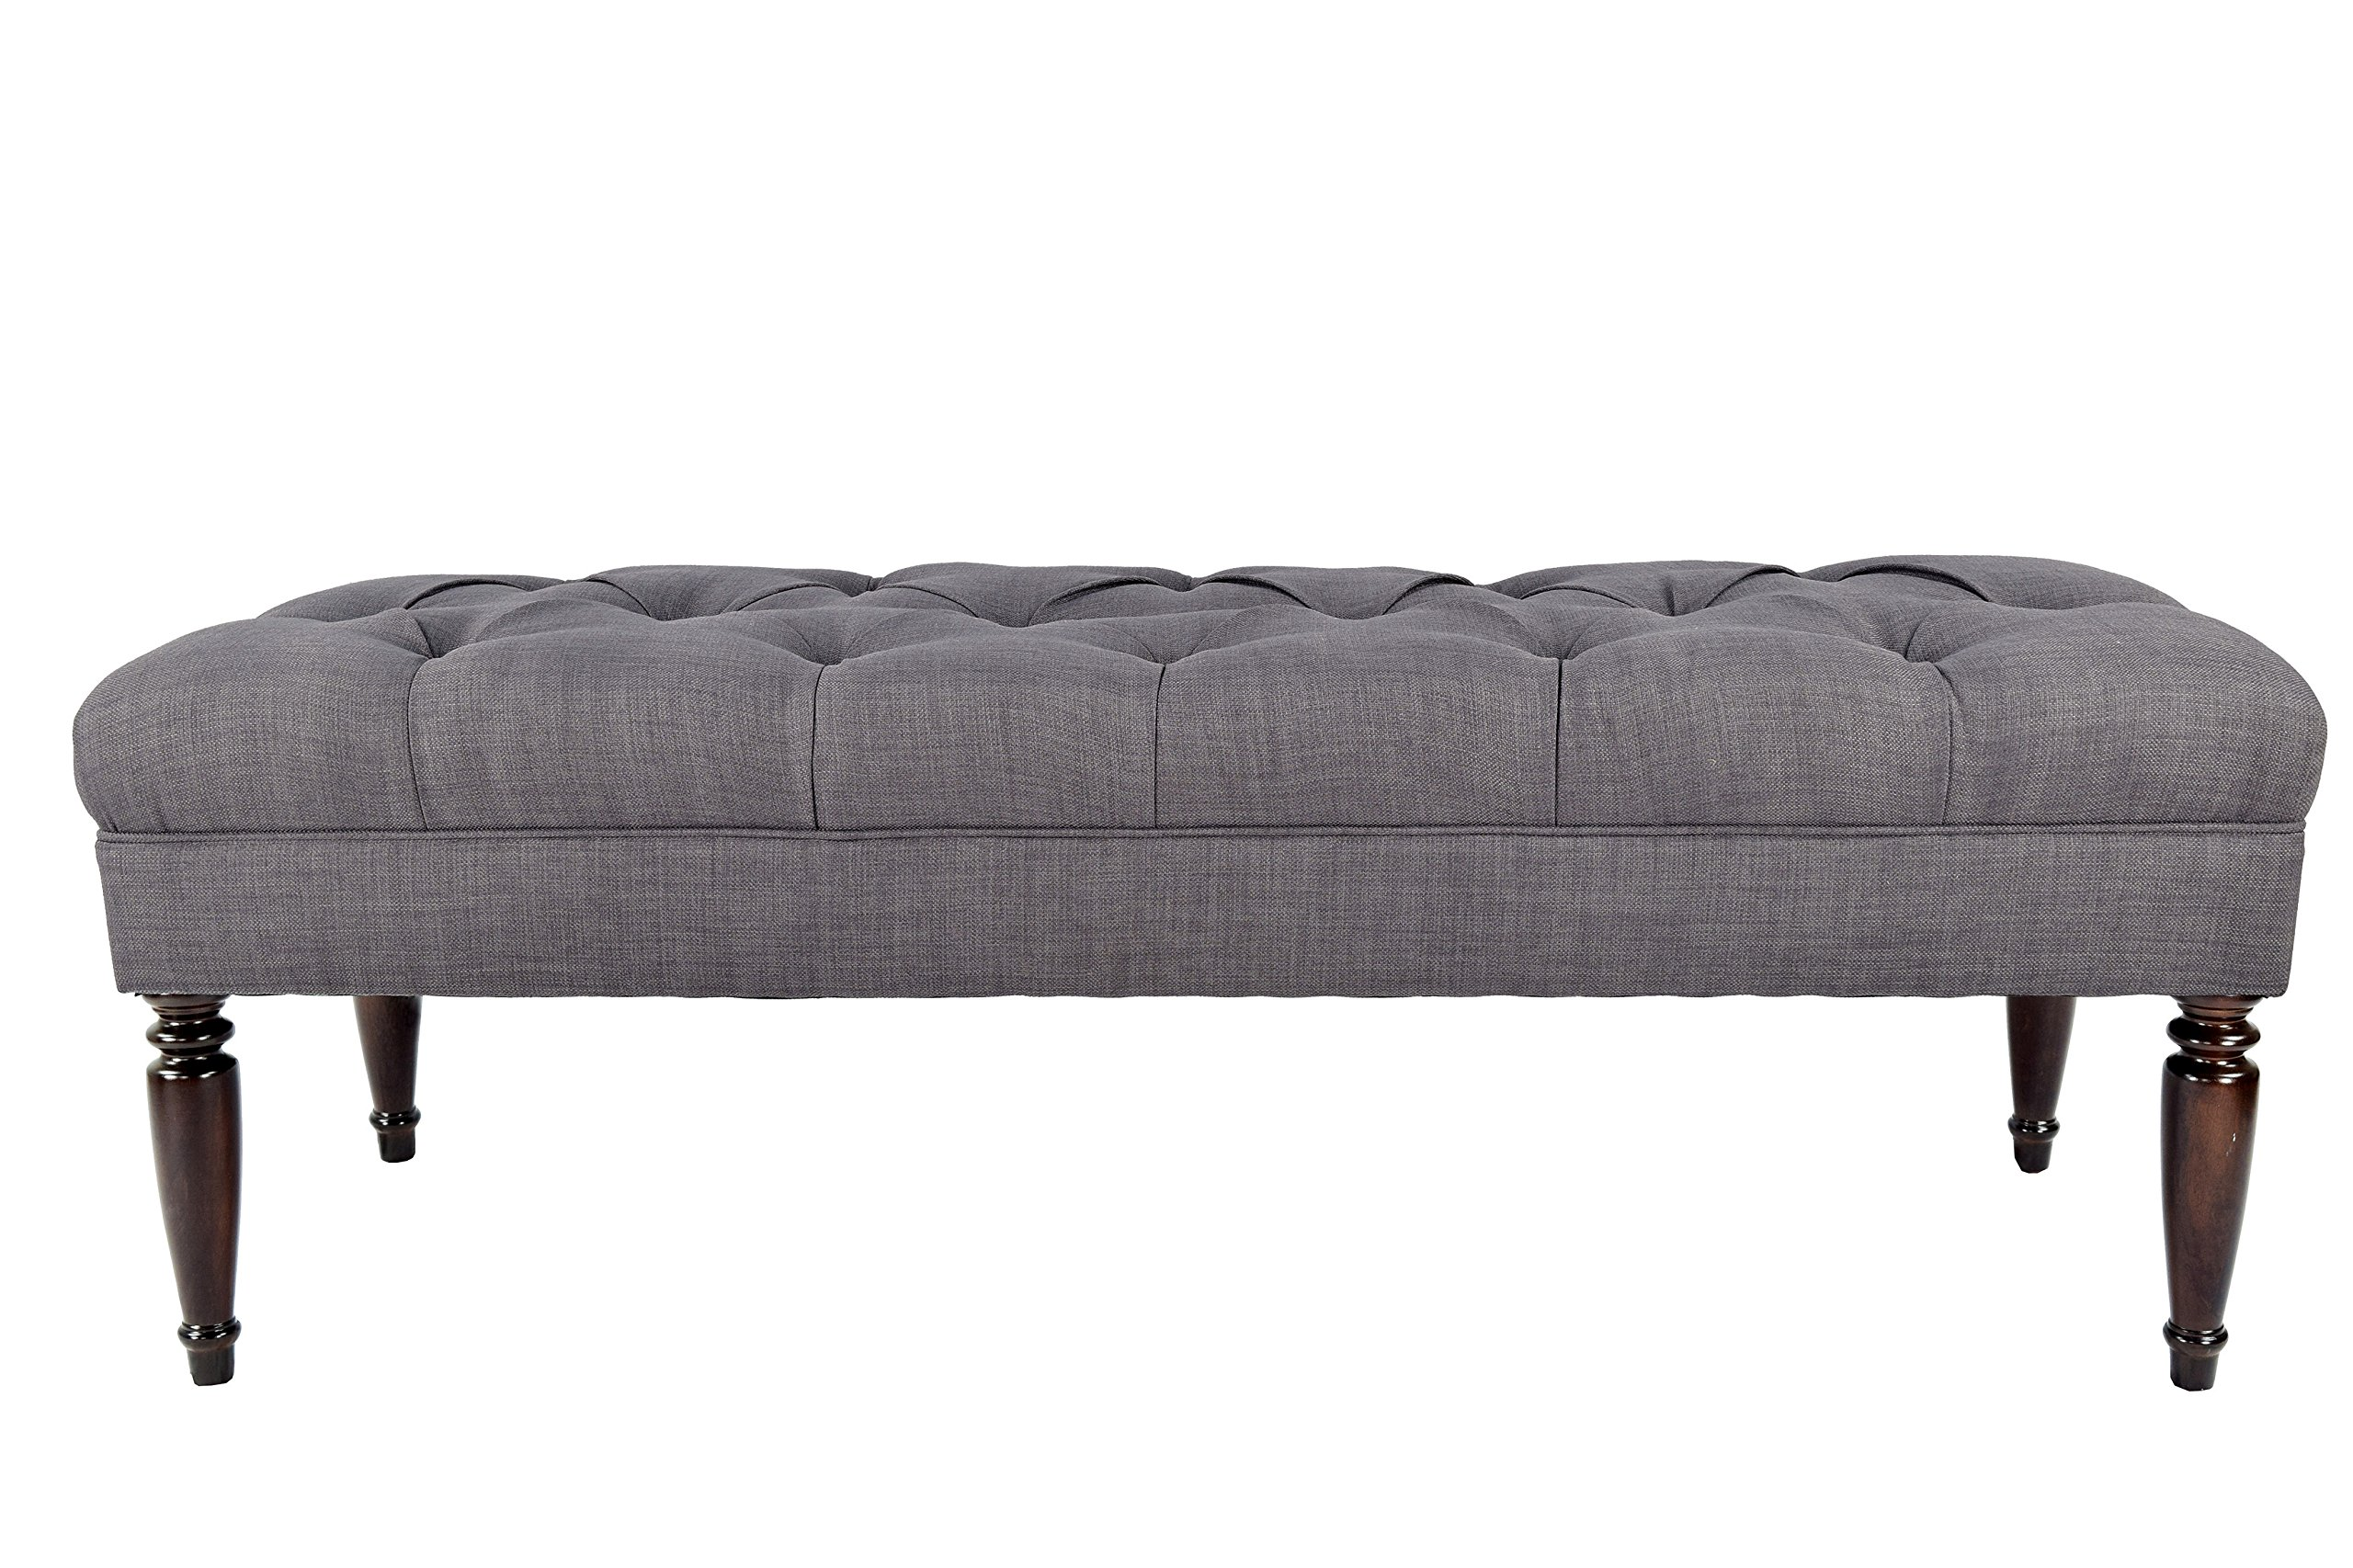 MJL Furniture Designs Claudia Collection Upholstered Diamond Tufted Bedroom Bench, HJM Series, Grey/Red Tint